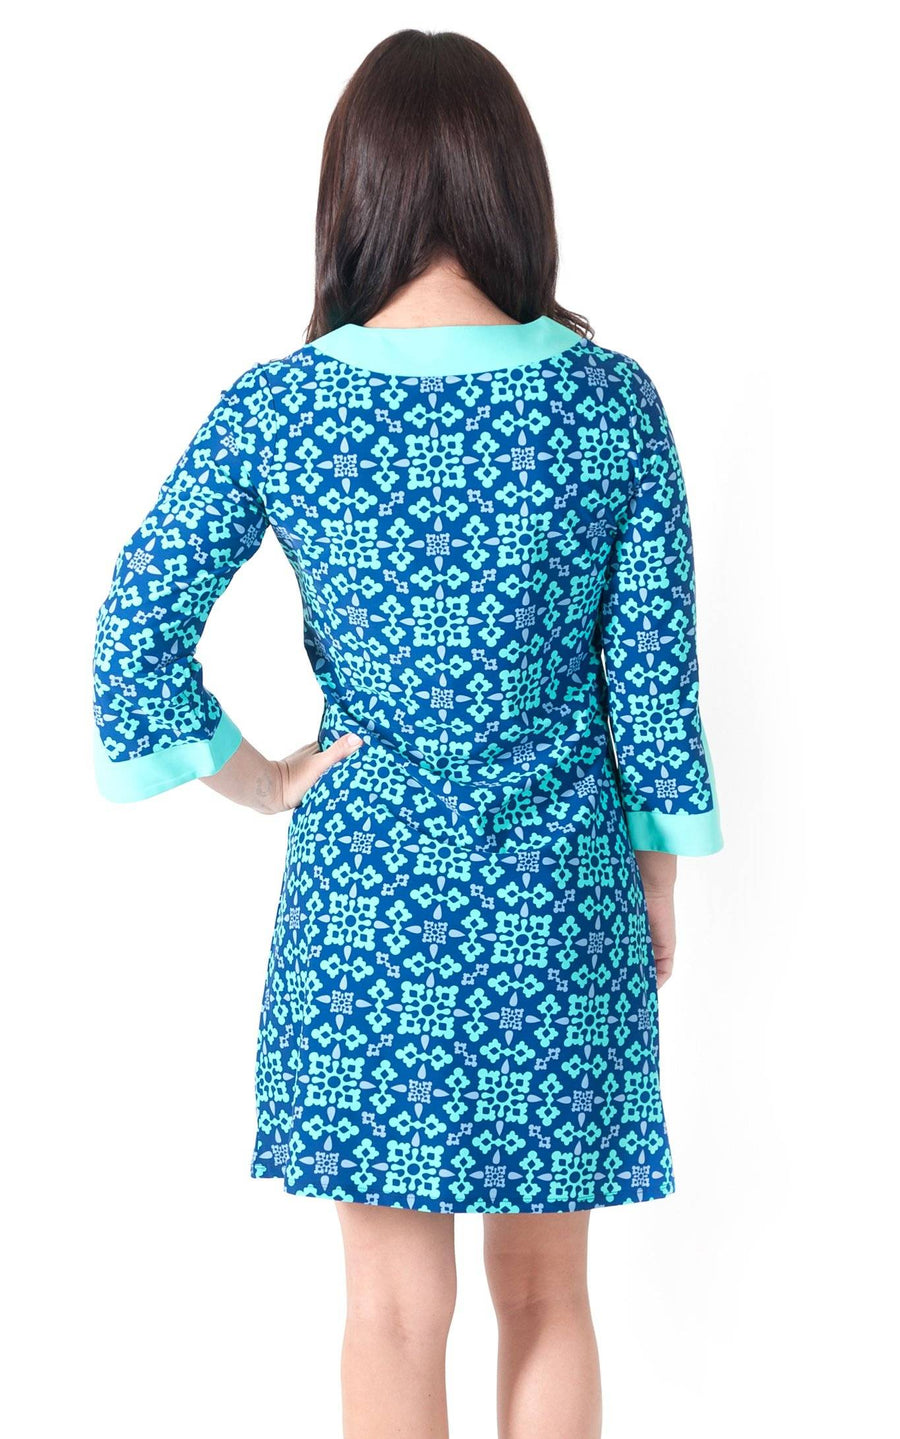 All For Color-Autumn Sky Prescot Lane Tunic Dress - FINAL SALE-Dresses